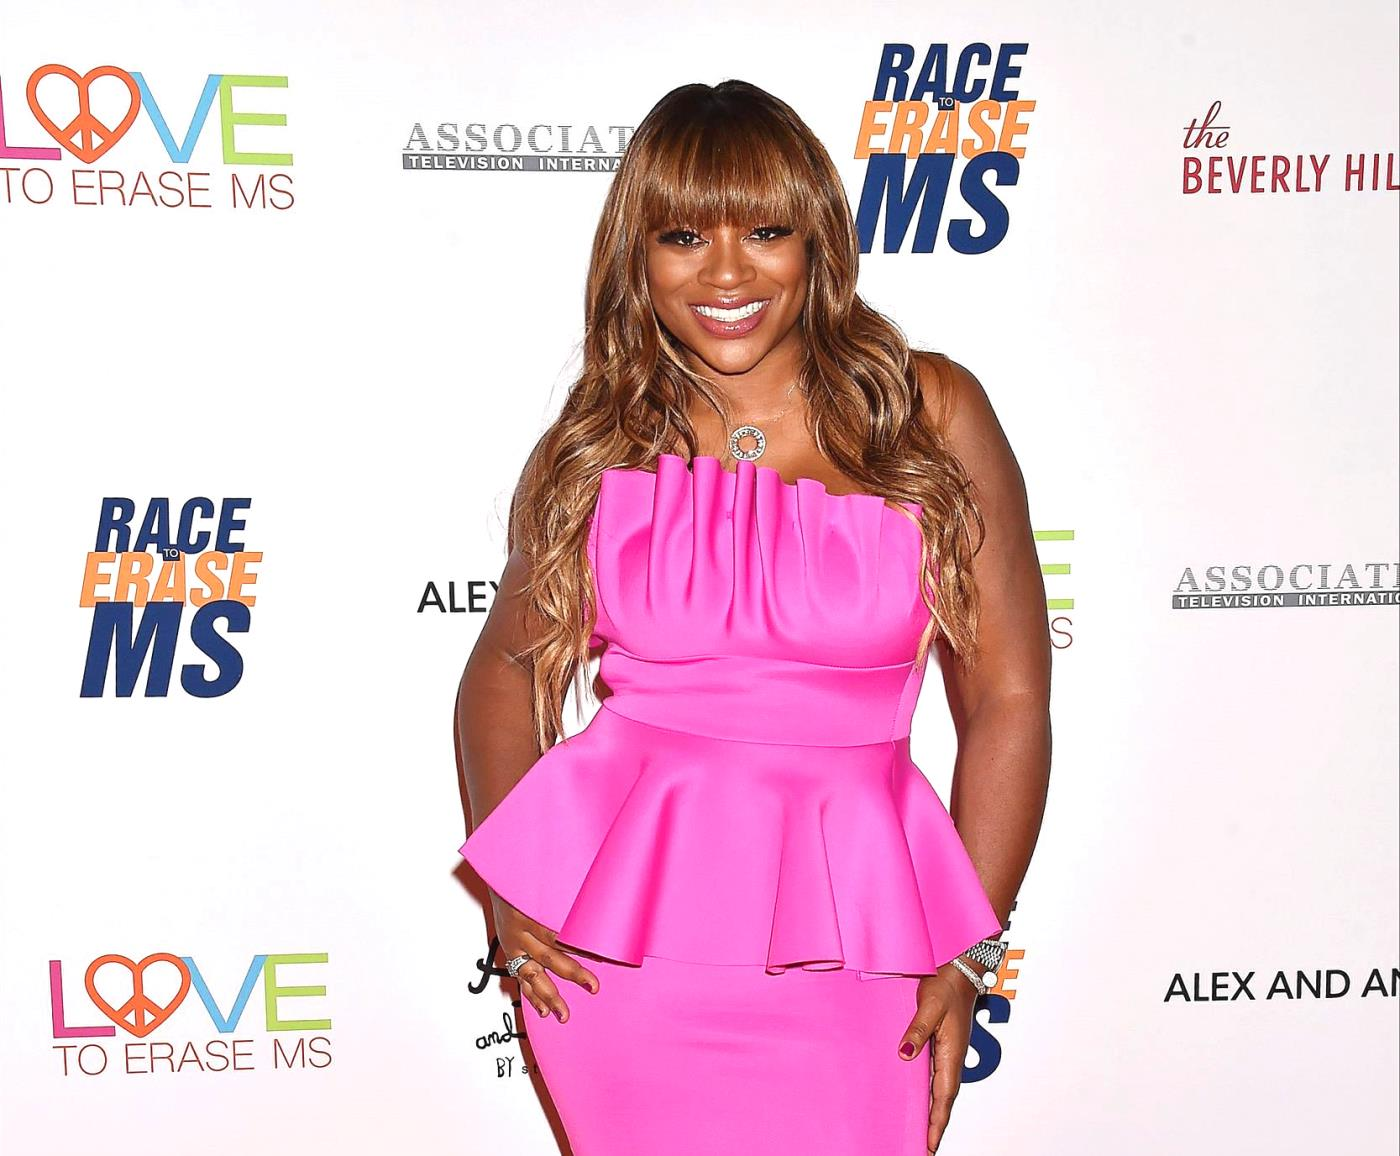 Bershan Shaw Reportedly Set to Join the RHONY as the Franchise's First Black Cast Member Amid Attempt to Diversify